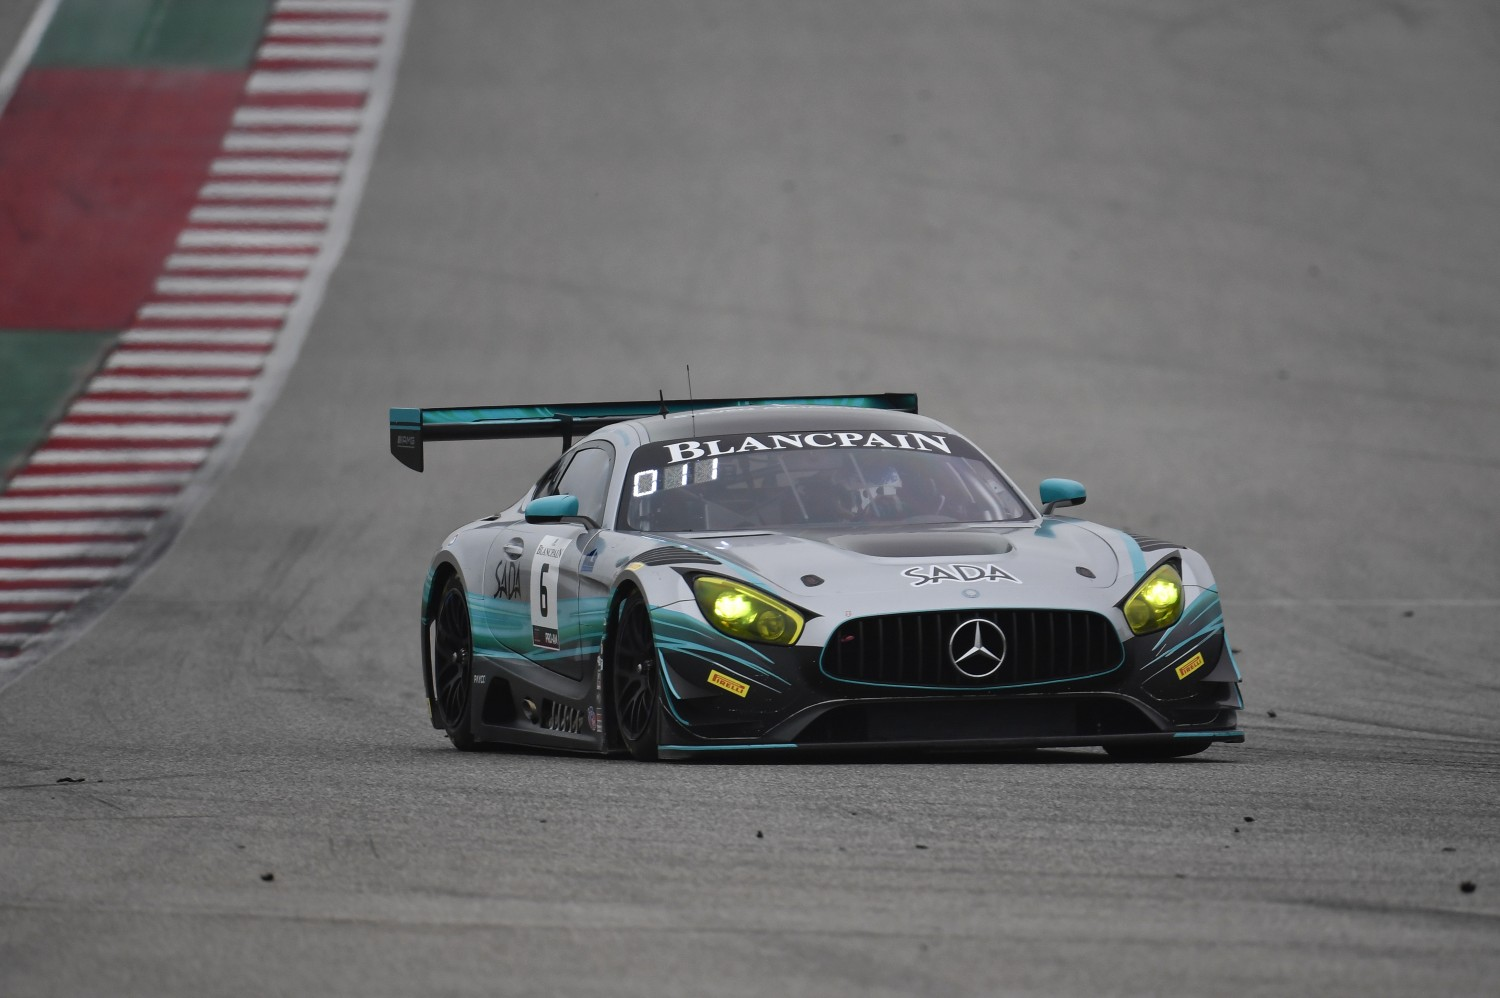 6: US RaceTronics, Steven Aghakhani, Richard Antinucci, Mercedes-AMG GT3, Sada Systems | SRO Motorsports Group